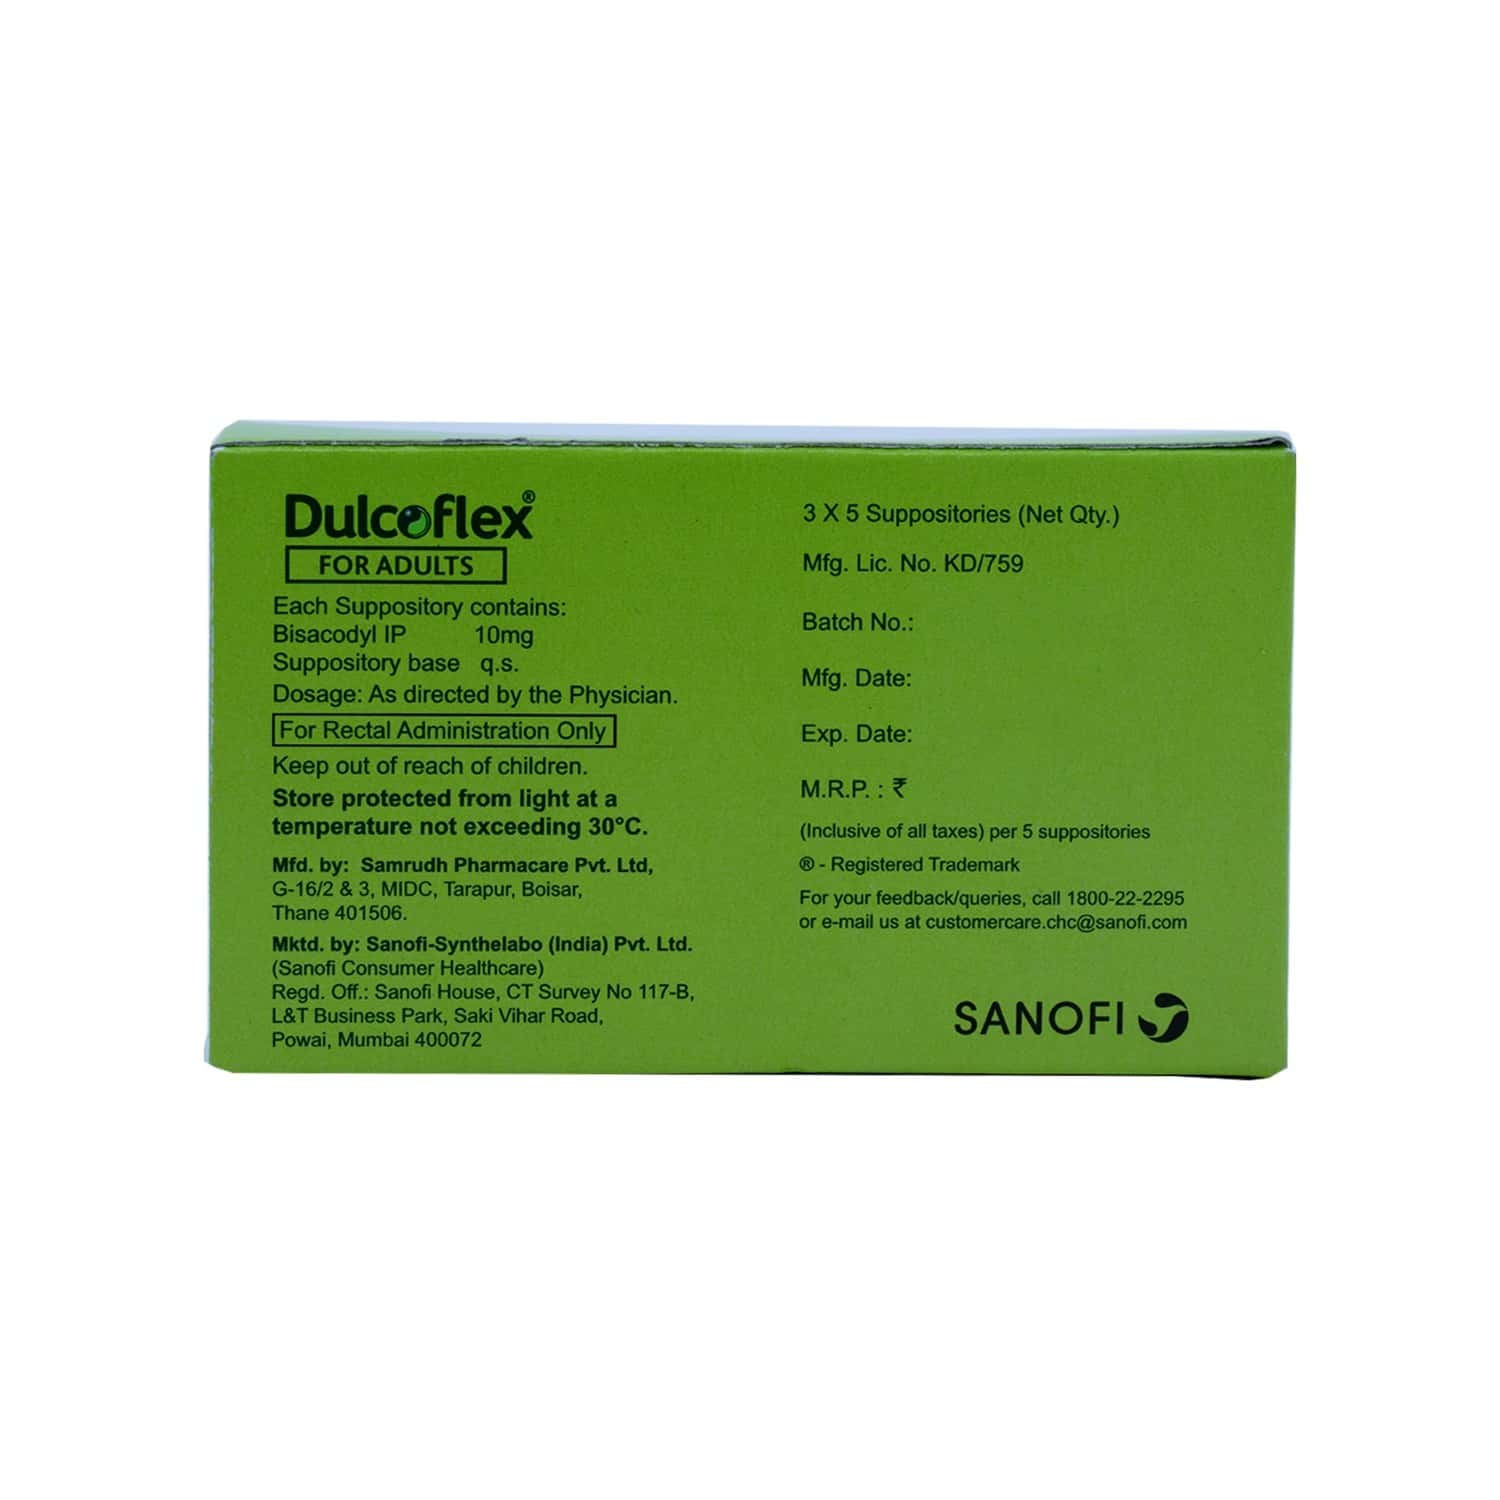 Dulcoflex 10mg Suppository For Adults - 5's